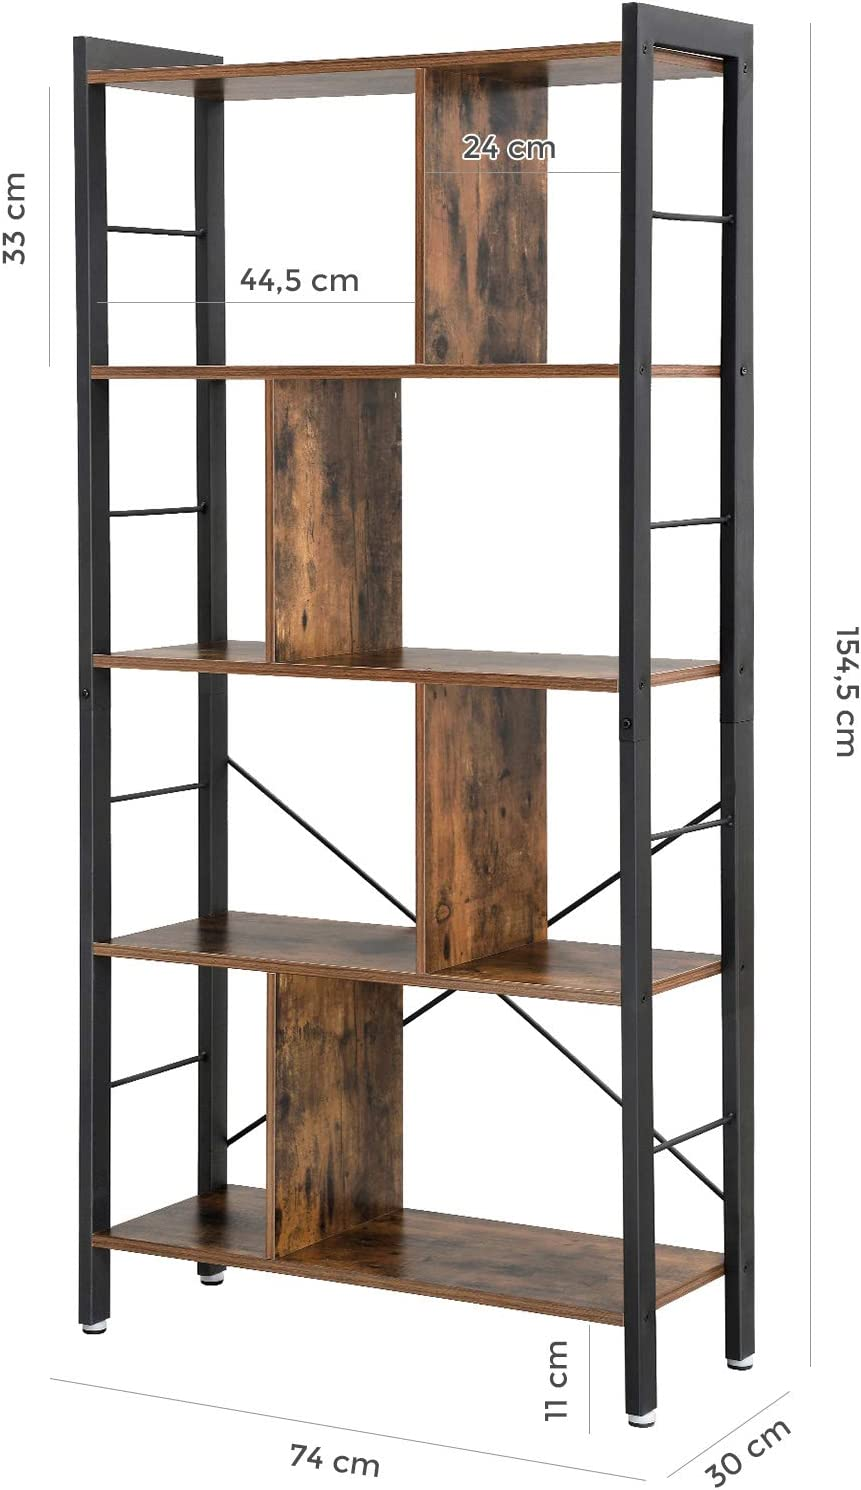 Industrial Bookcase Rustic Brown LBC12BX Floor Standing Bookcase VASAGLE Bookshelf Large 4-Tier Storage Rack in Living Room Office Study Simple Assembly Engineered Wood and Stable Iron Frame